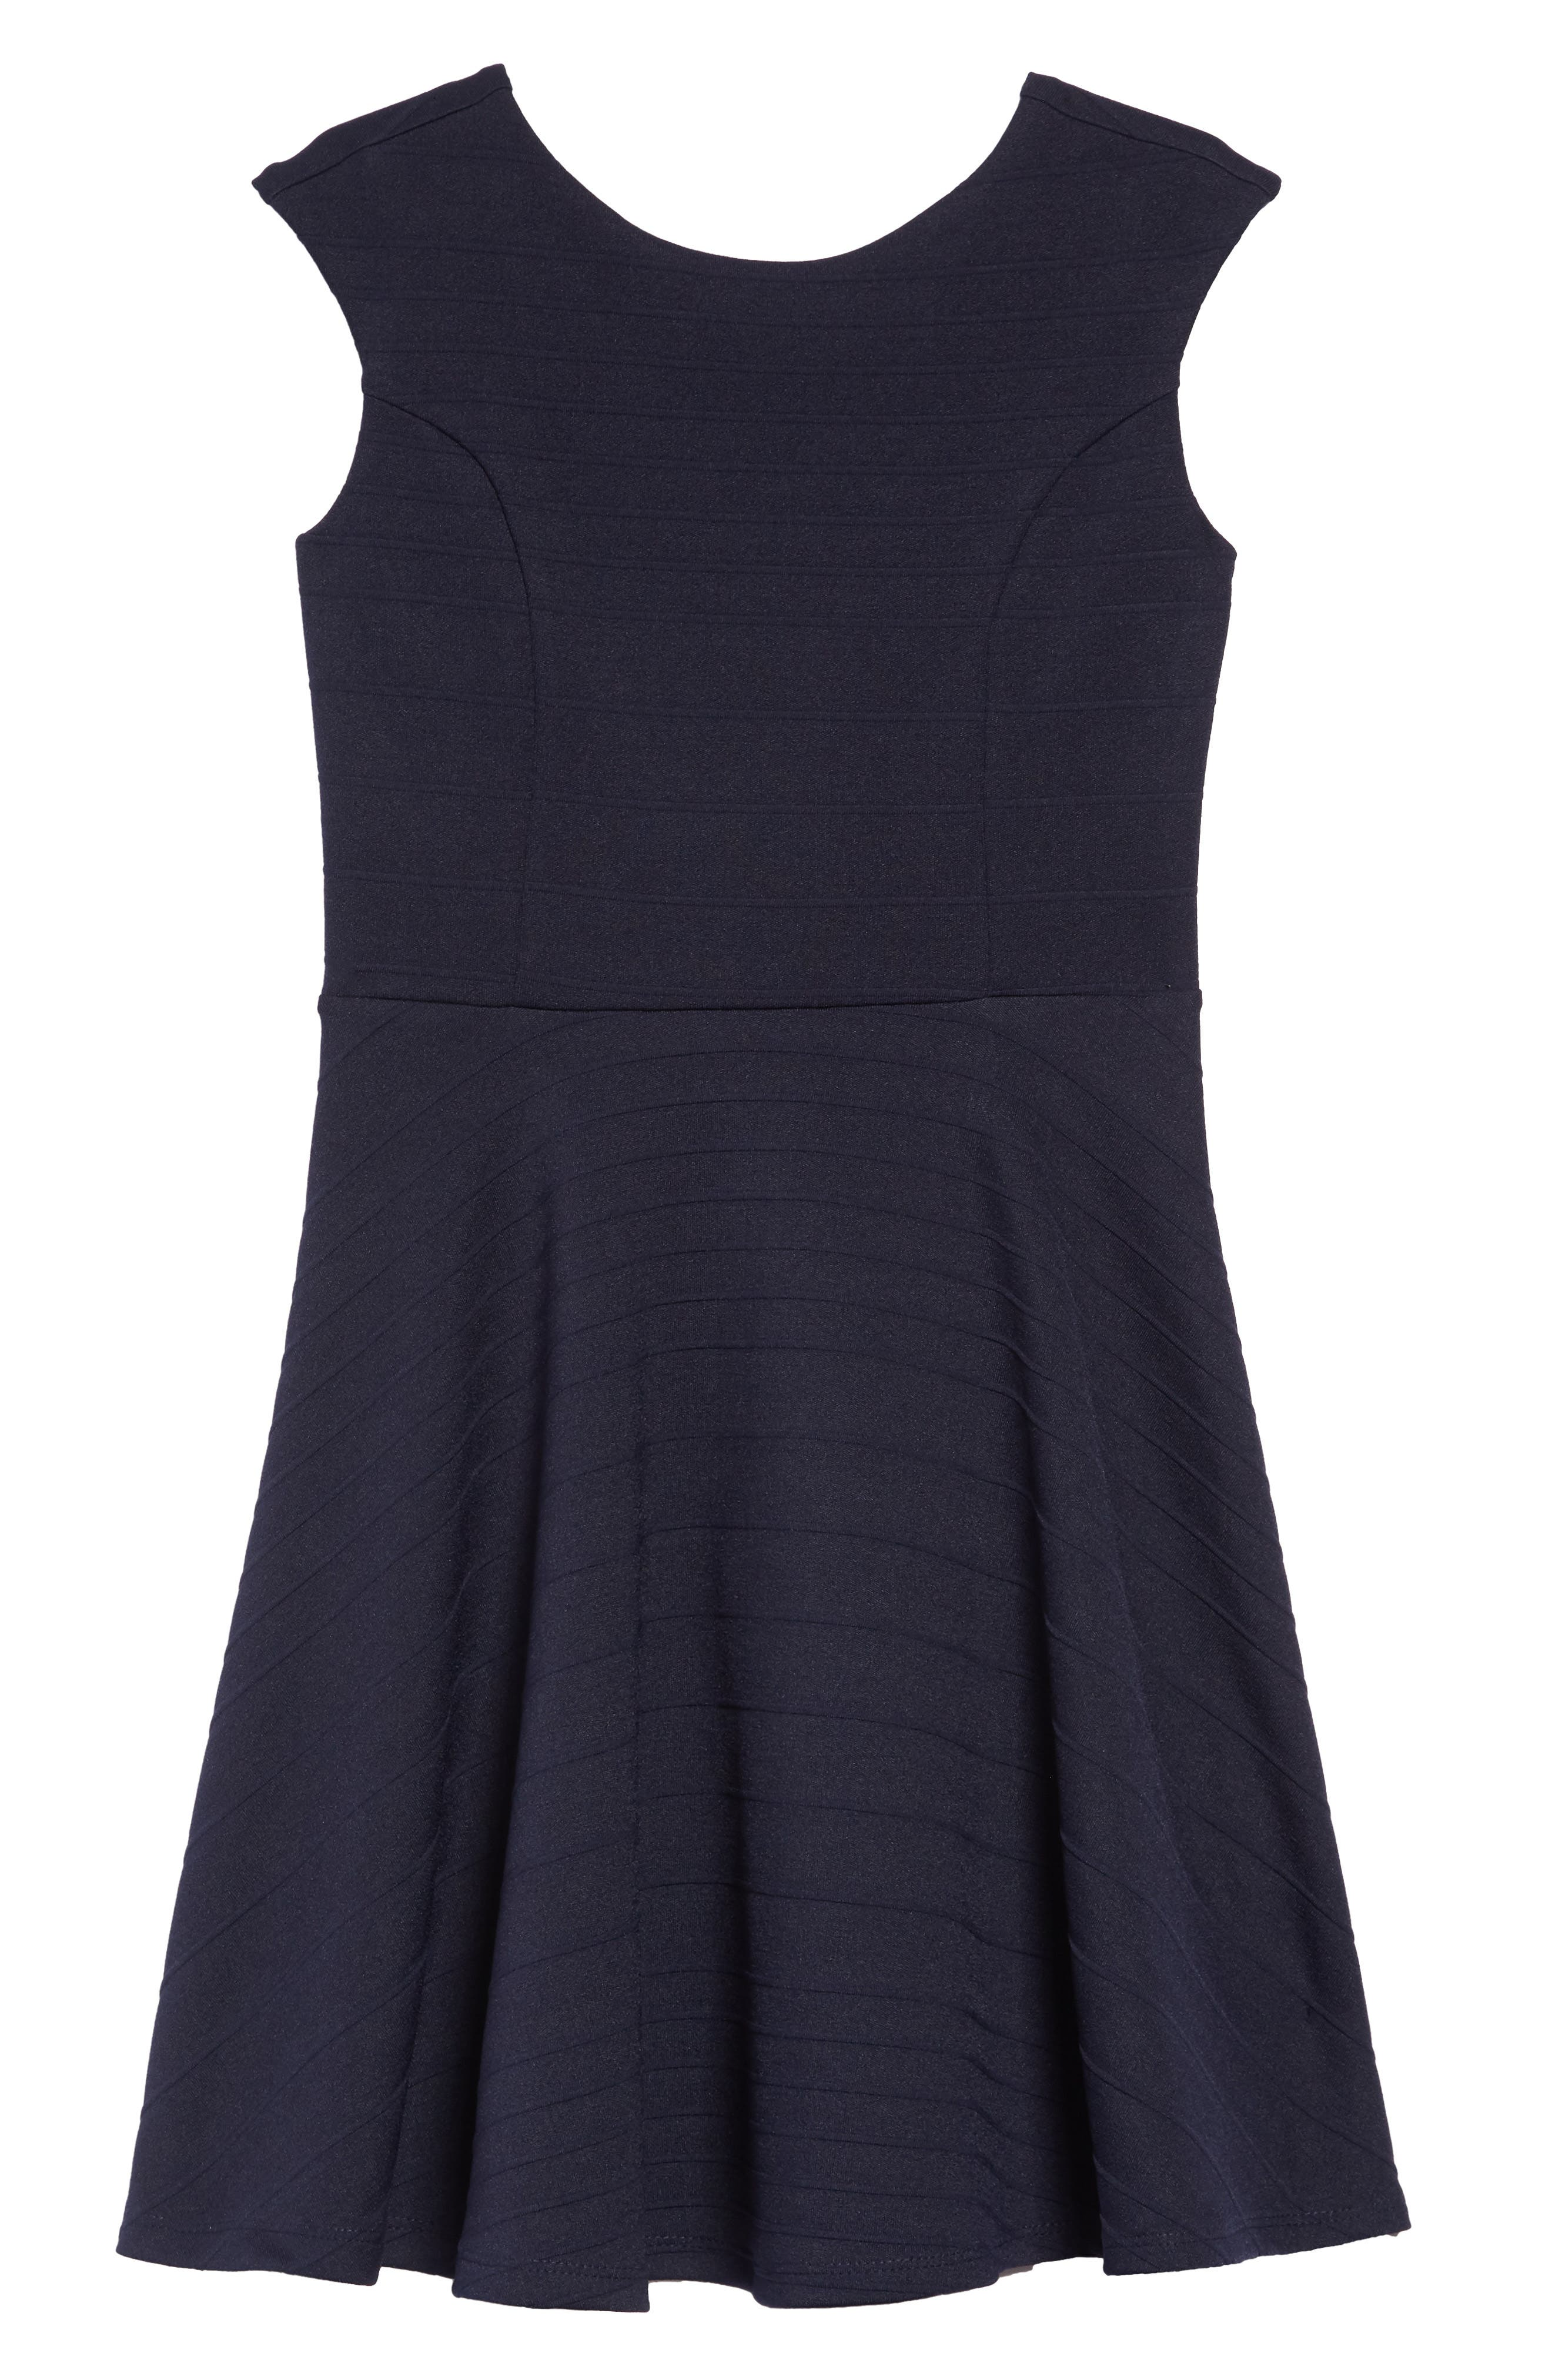 UN DEUX TROIS, Stripe Fit & Flare Dress, Main thumbnail 1, color, NAVY